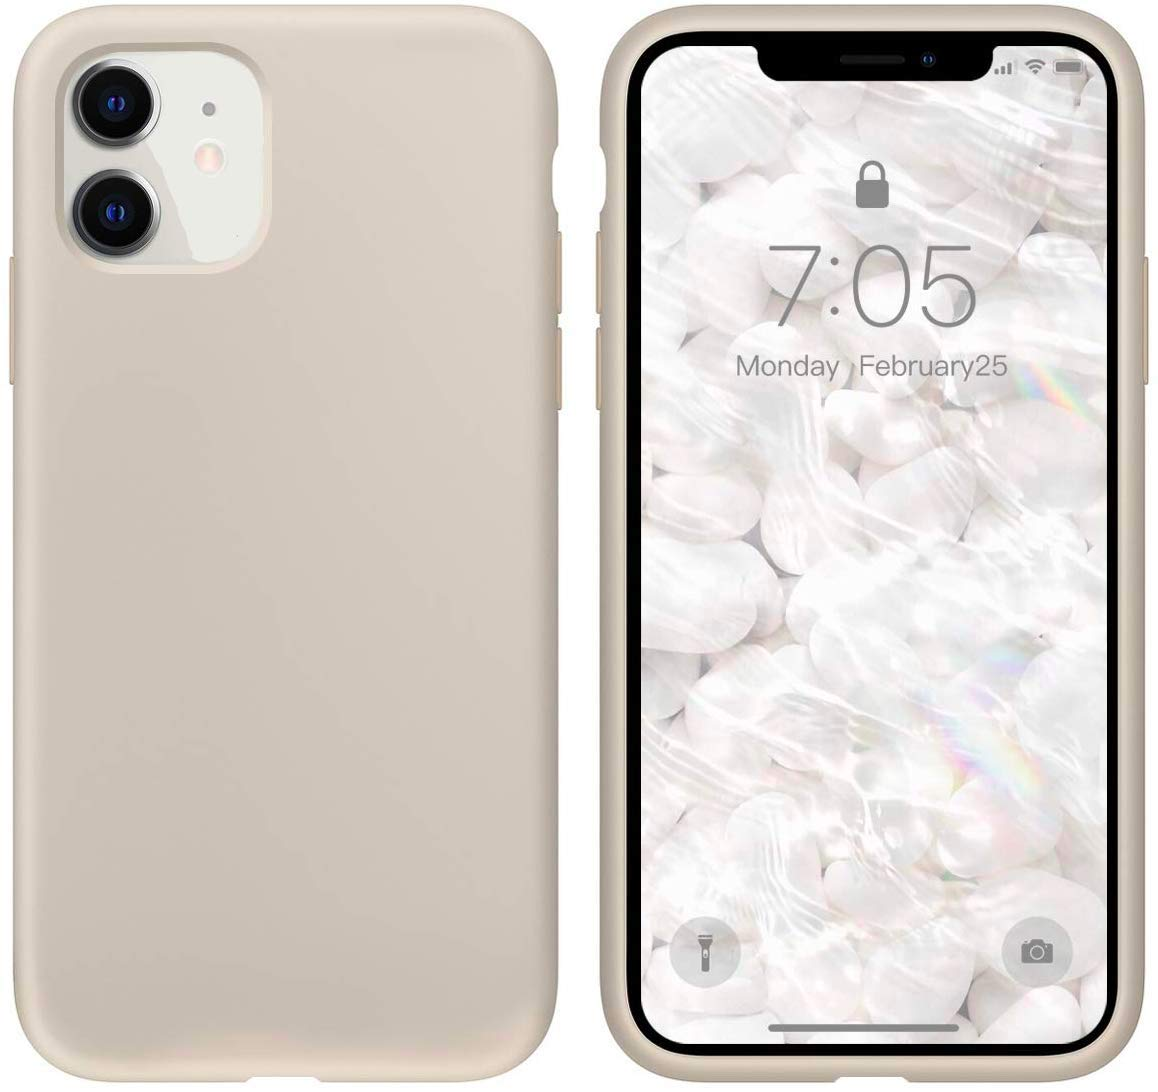 """IceSword iPhone 11 Case, Stone iPhone 11 Silicone Case, Gel Rubber Full Body, iPhone 11 Cute iPhone 11 case, Soft Microfiber Cloth, 6.1"""" iPhone 11 case Silicone, iPhone 11 case Cute - Stone"""